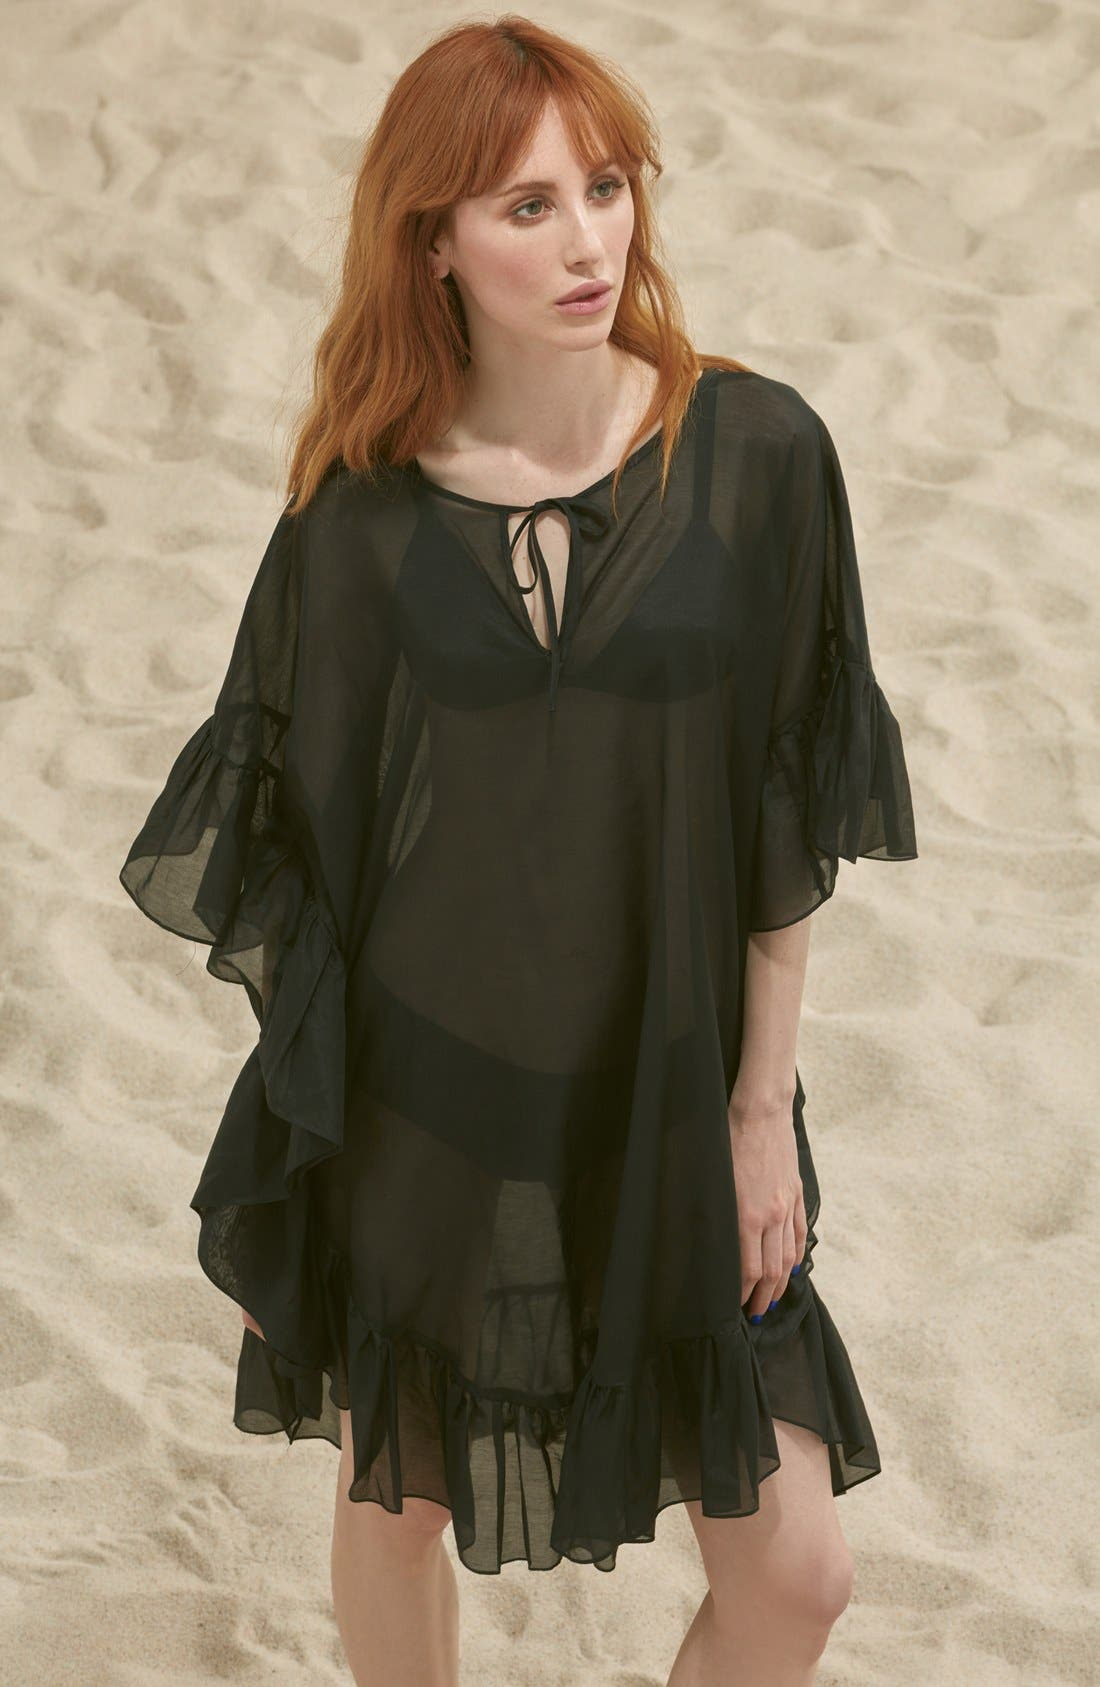 Main Image - Soler 'Yasmine' Frill Tie Cover-Up Caftan